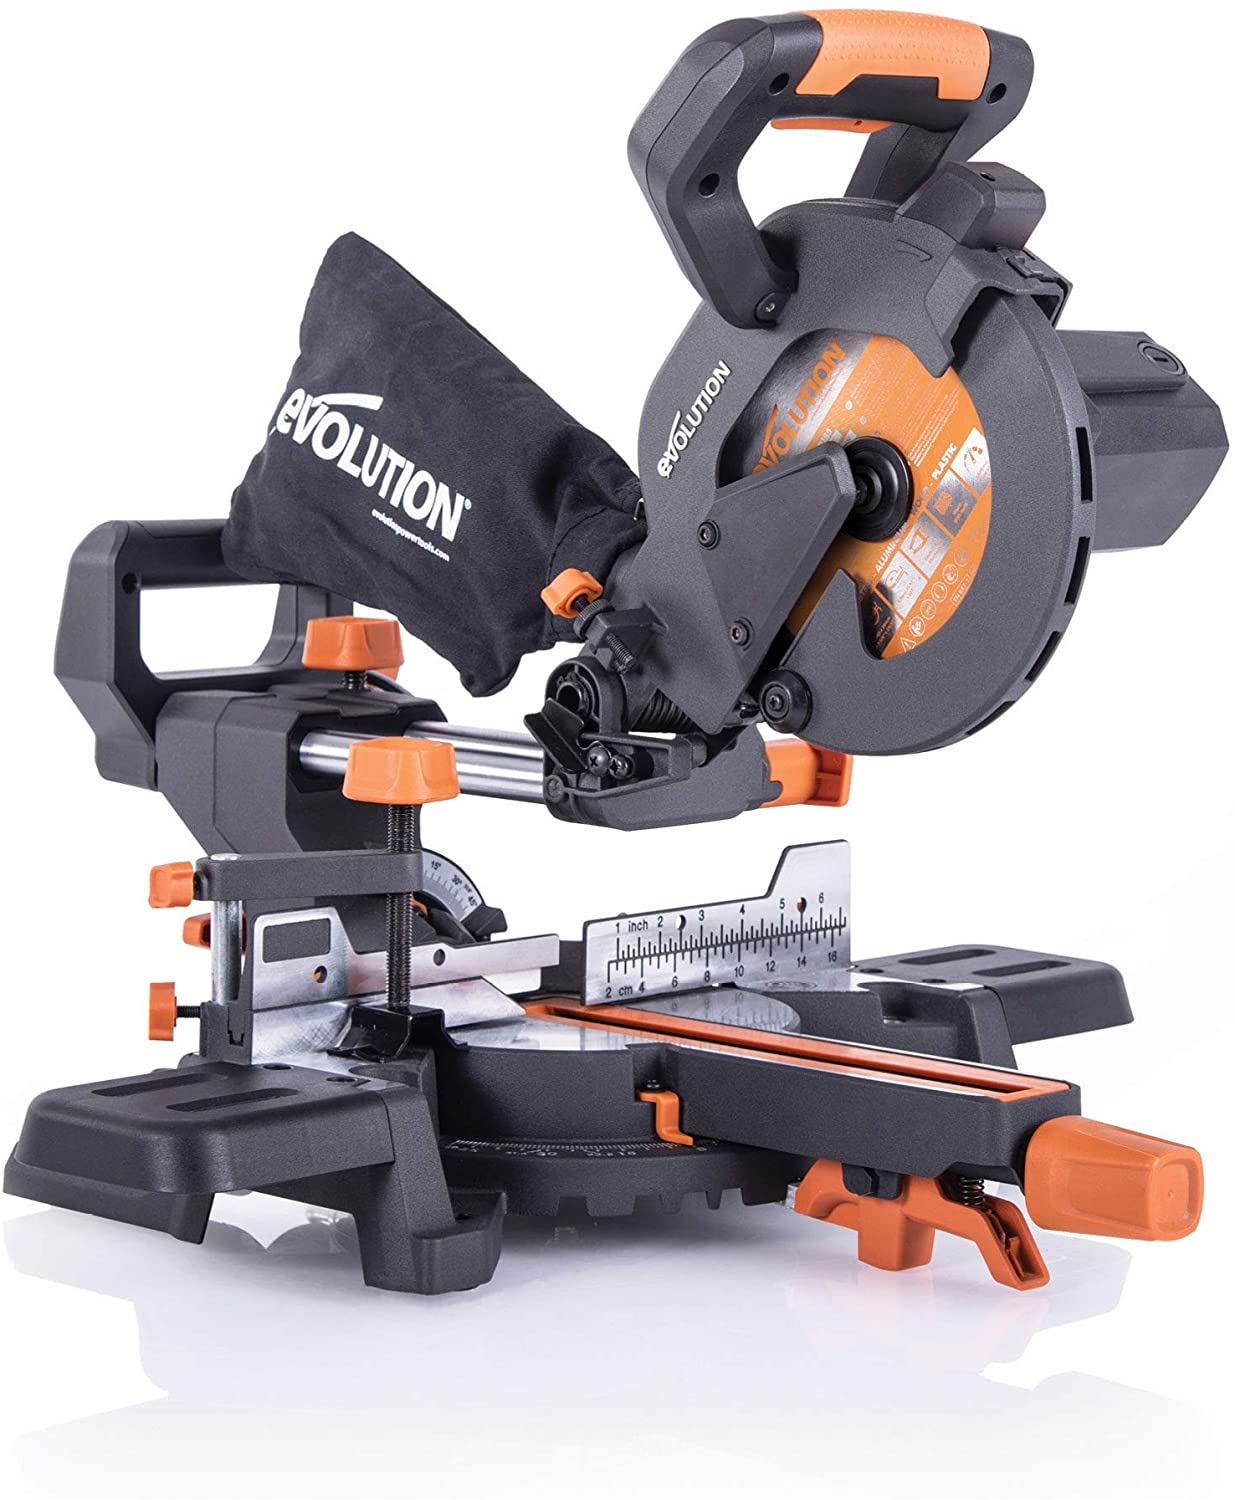 4. Evolution Power Tools R185SMS+ 7-1/4-Inch Multi-Material Compound Sliding Miter Saw